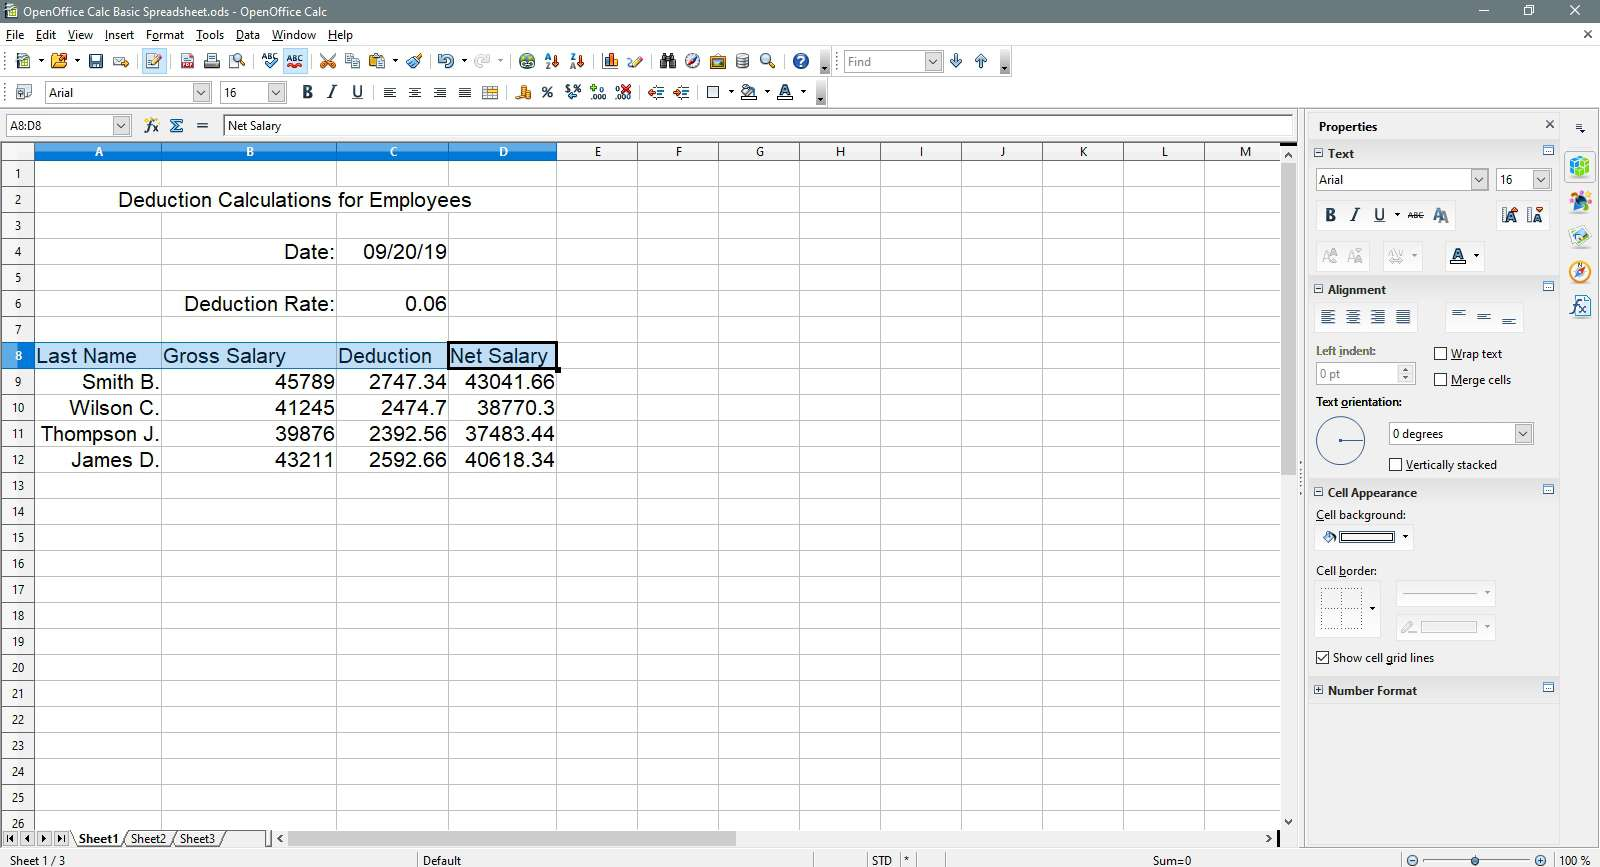 The header row is selected in OpenOffice Calc.